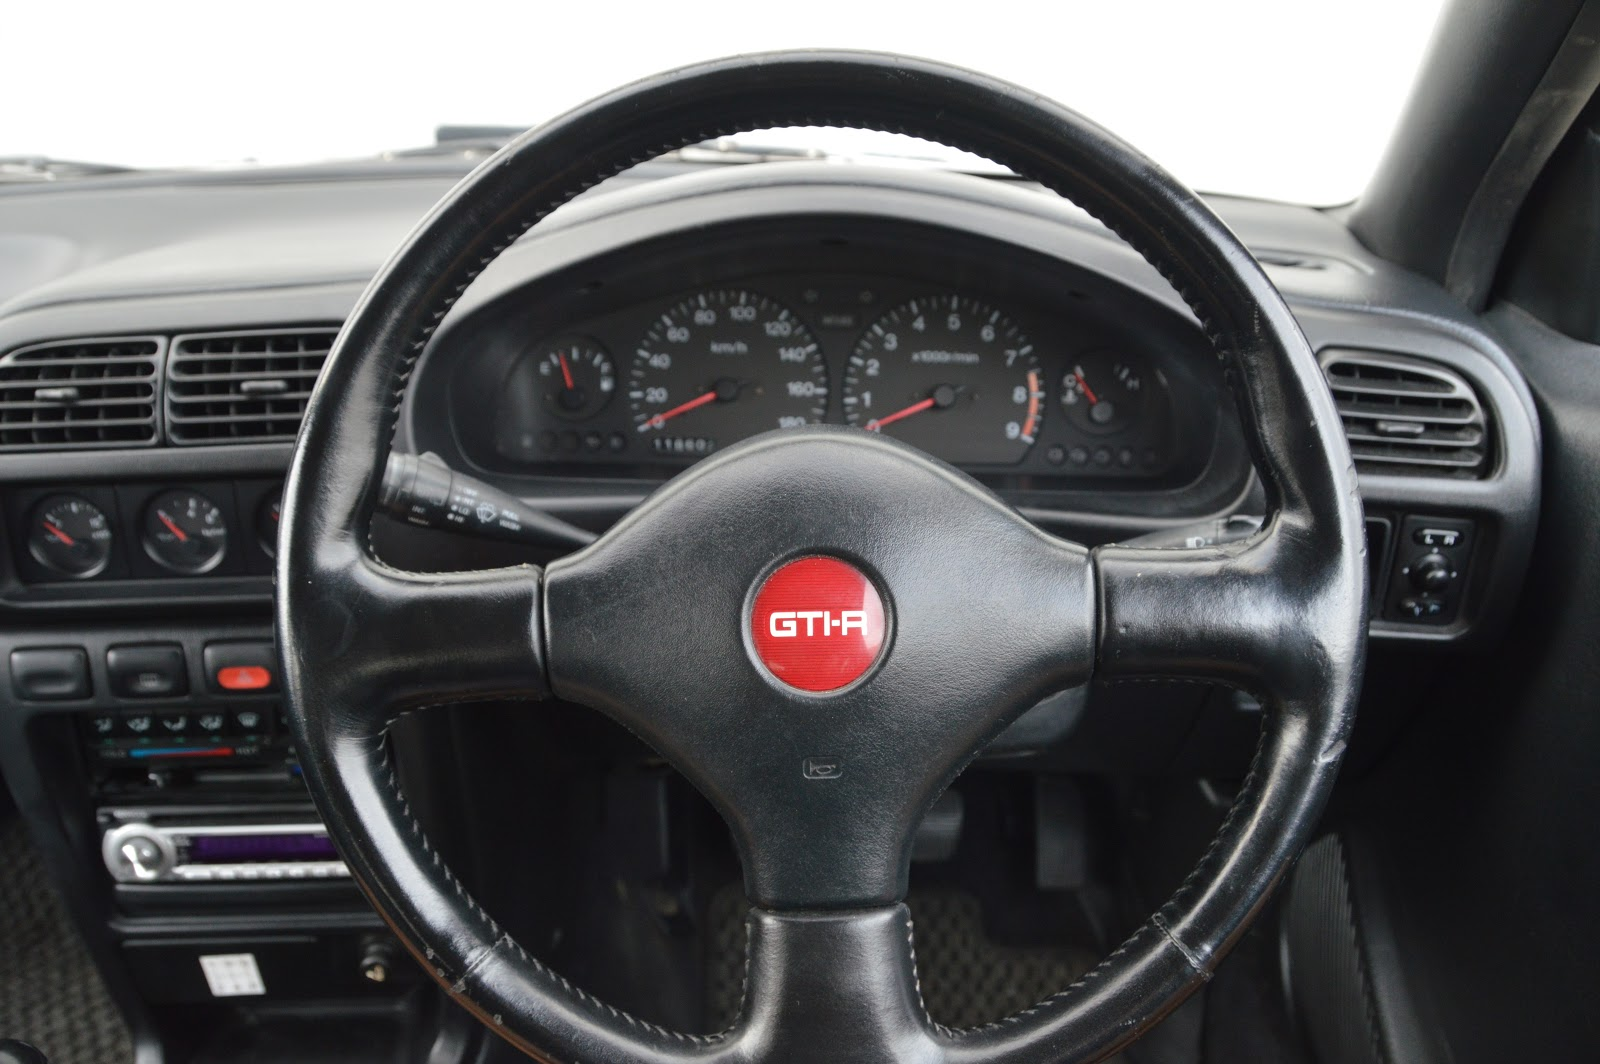 nissan pulsar gti r buyers guide vehicle import and car. Black Bedroom Furniture Sets. Home Design Ideas